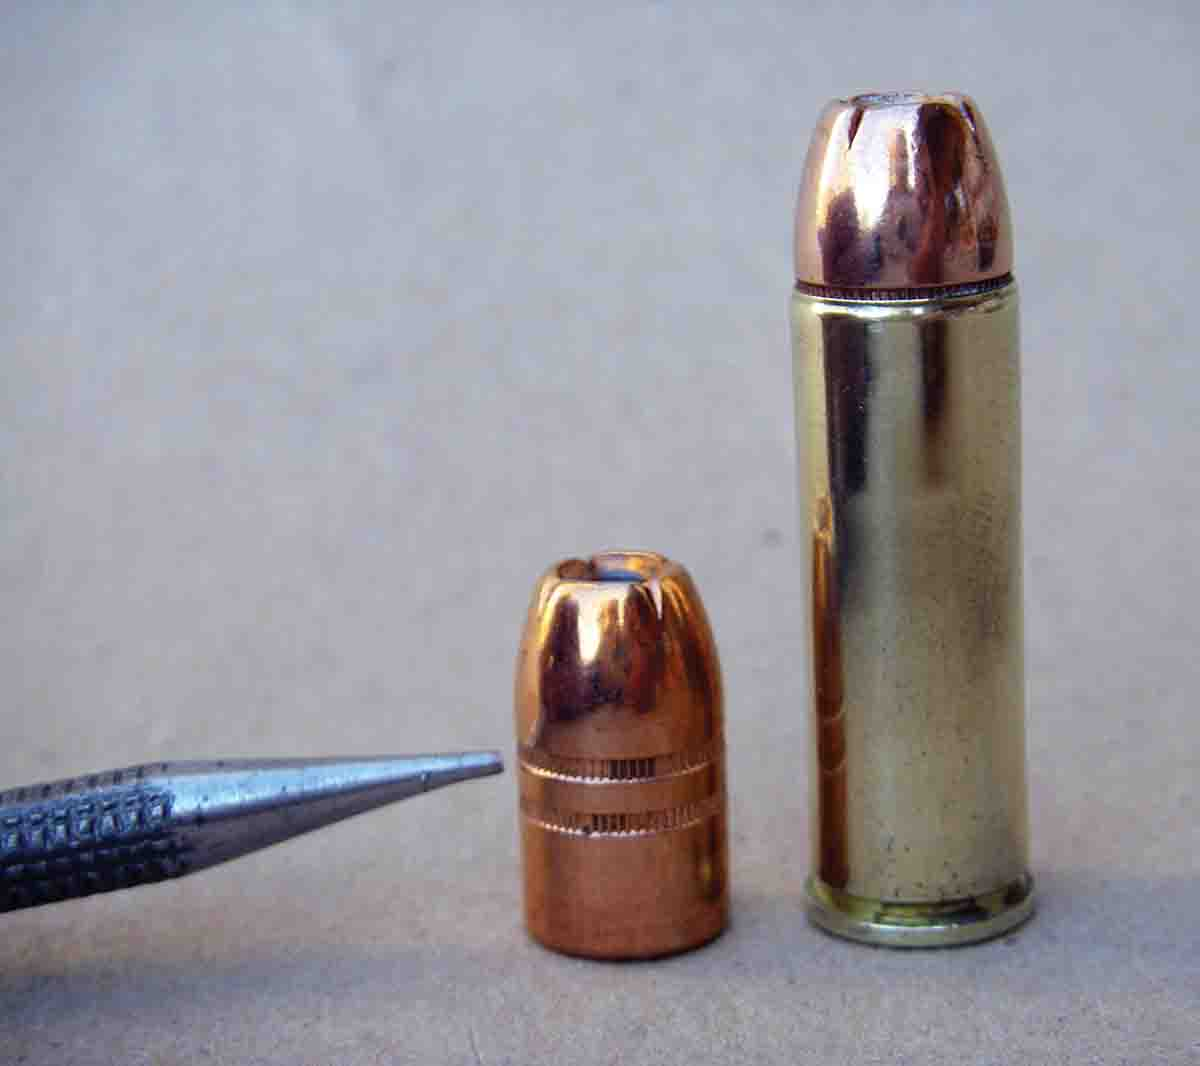 The popular Hornady 300-grain XTP-MAG should be crimped on the upper crimp groove to achieve the proper overall cartridge length.